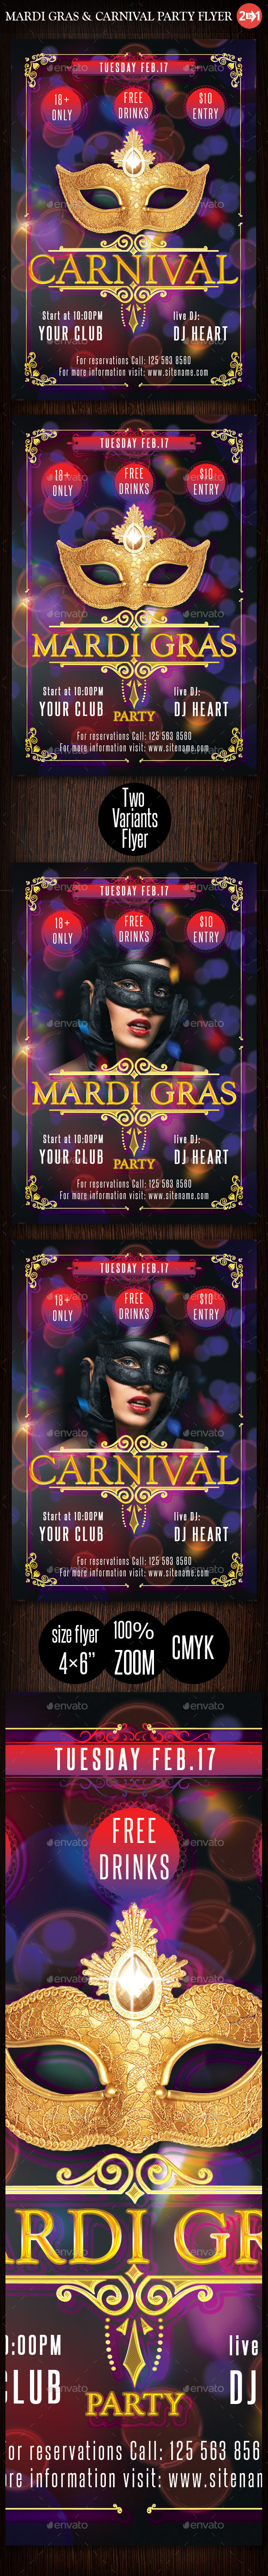 Mardi Gras & Carnival Party Flyer - Clubs & Parties Events